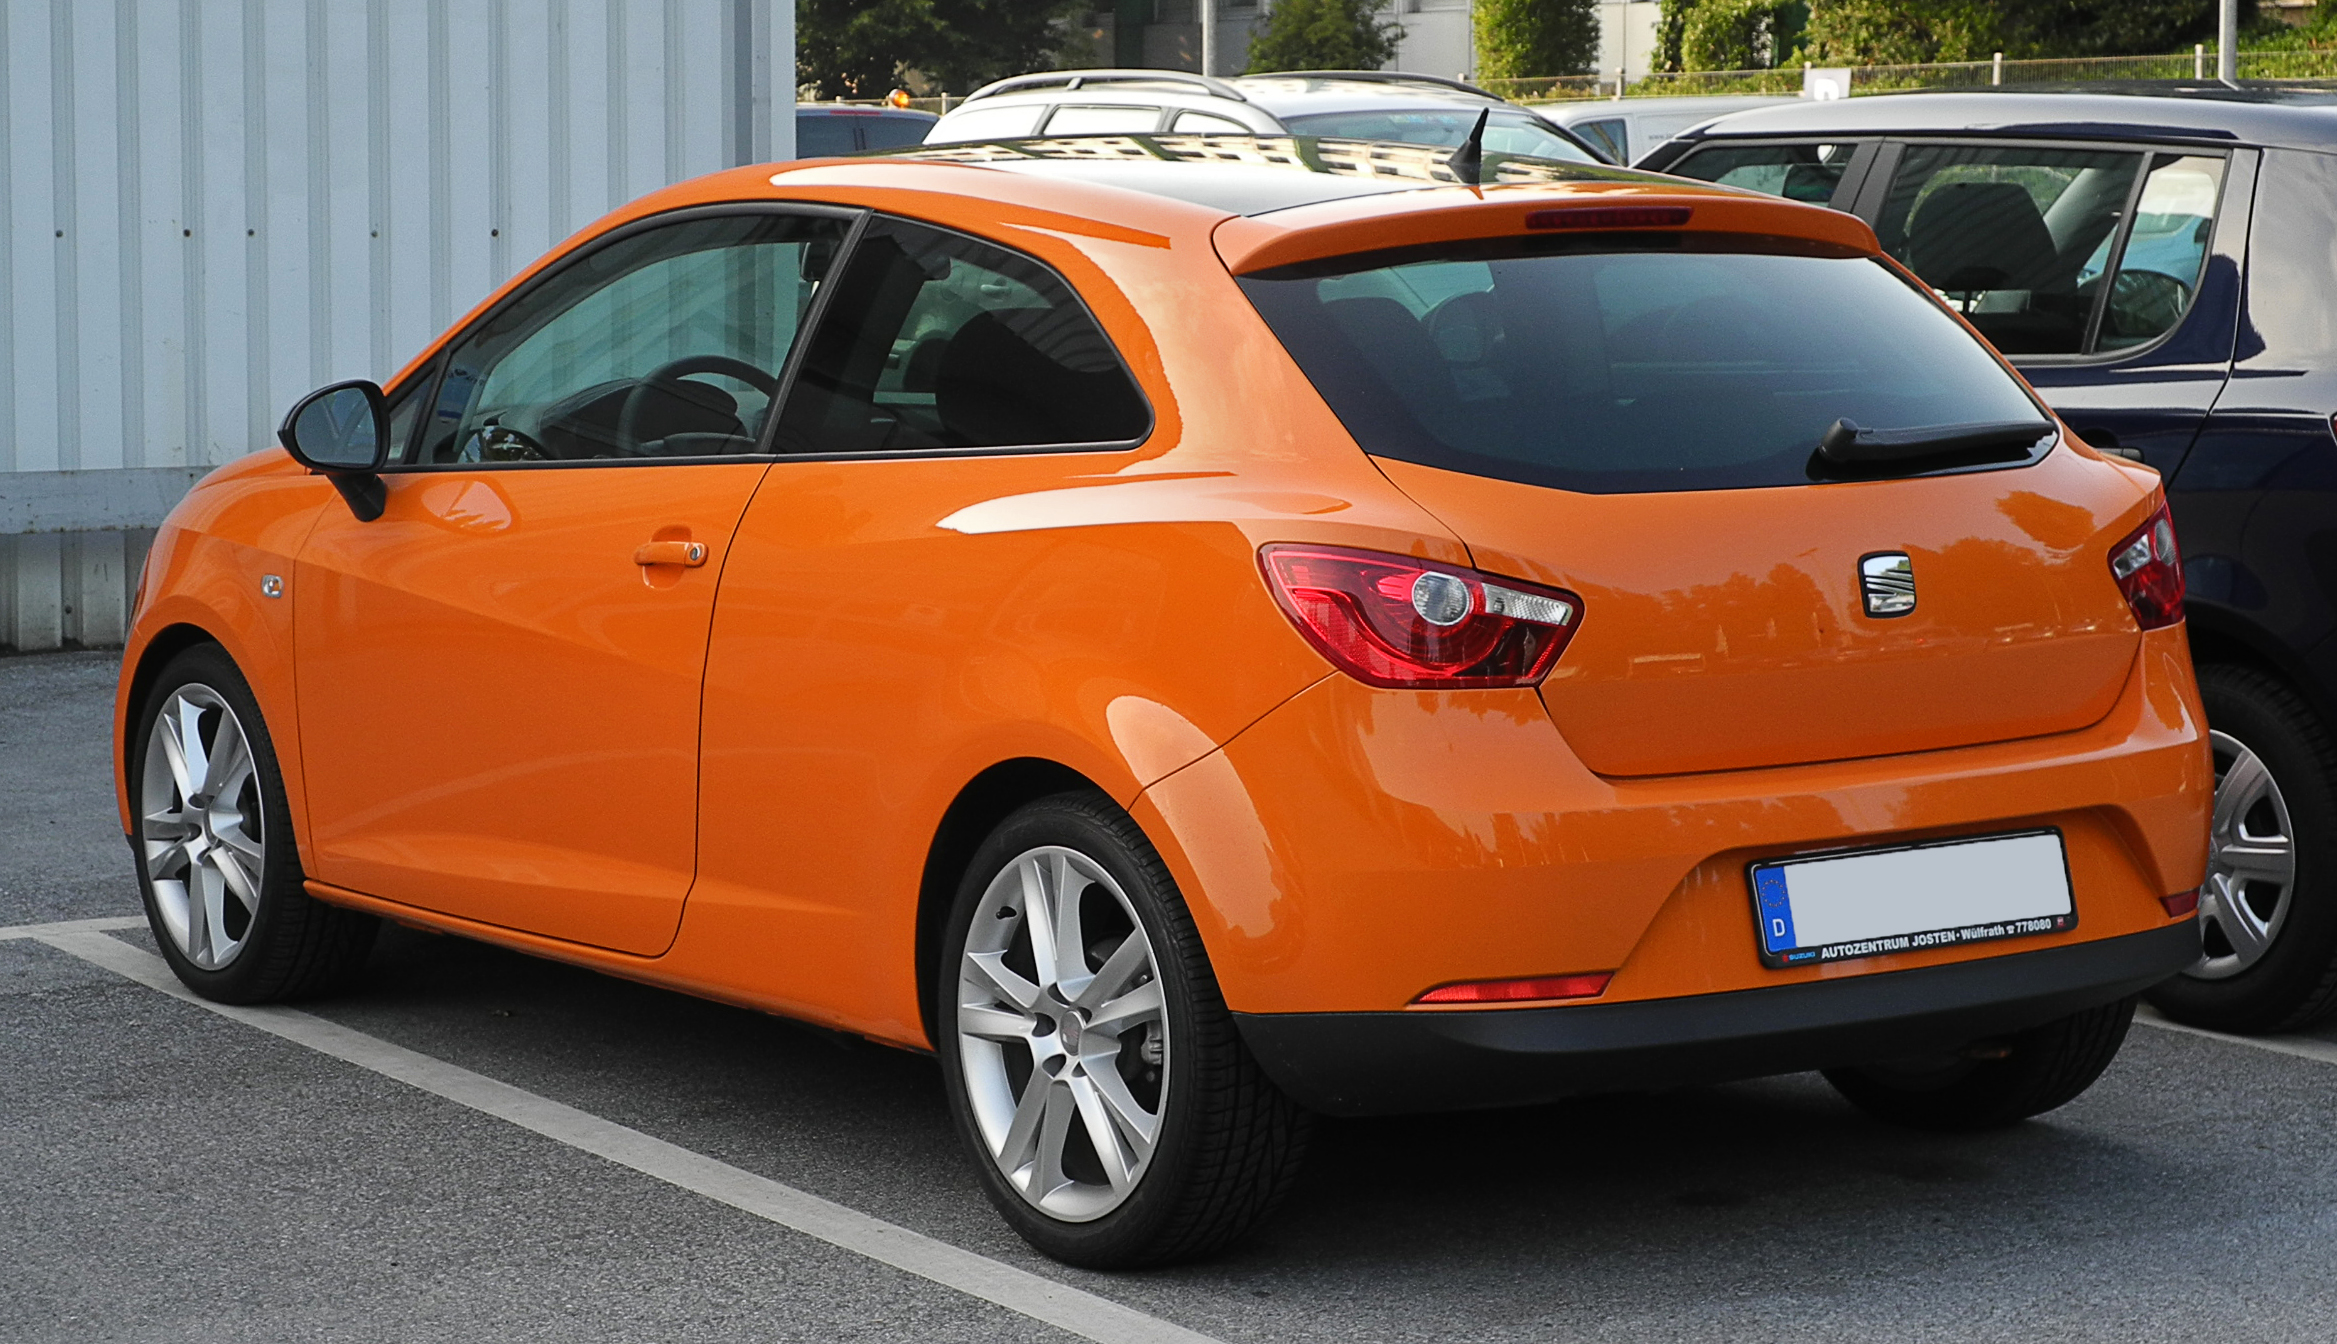 2011 seat ibiza sc pictures information and specs. Black Bedroom Furniture Sets. Home Design Ideas